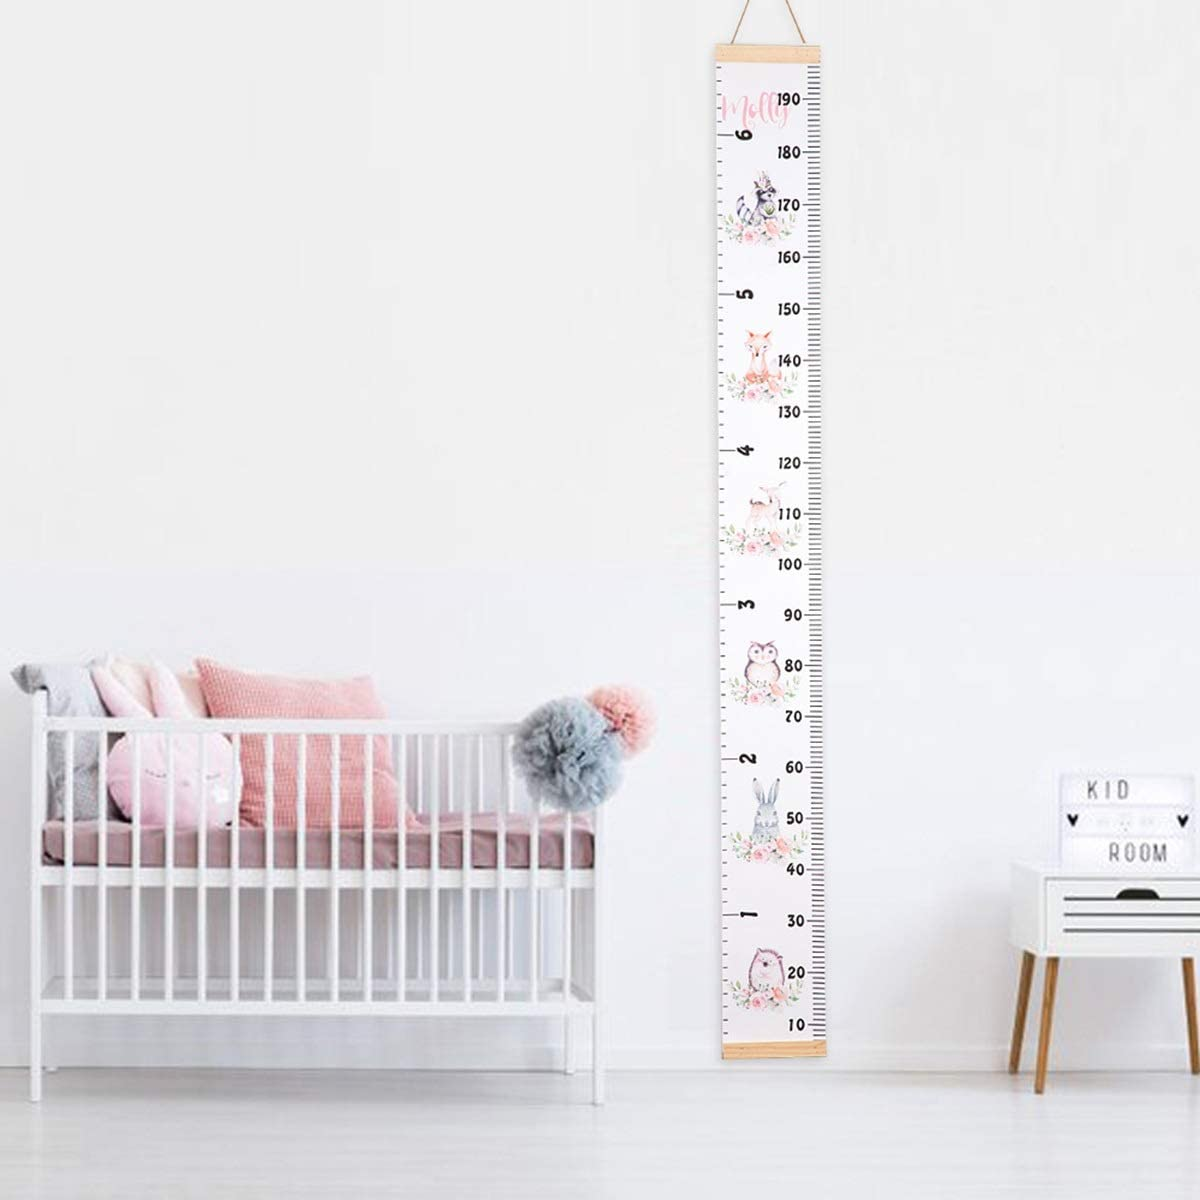 Waterproof Wood and Canvas Height Ruler Wall Ruler Cartoon Animal Print Baby Growth Chart Wall Decor for Kids Boys Girls Color B